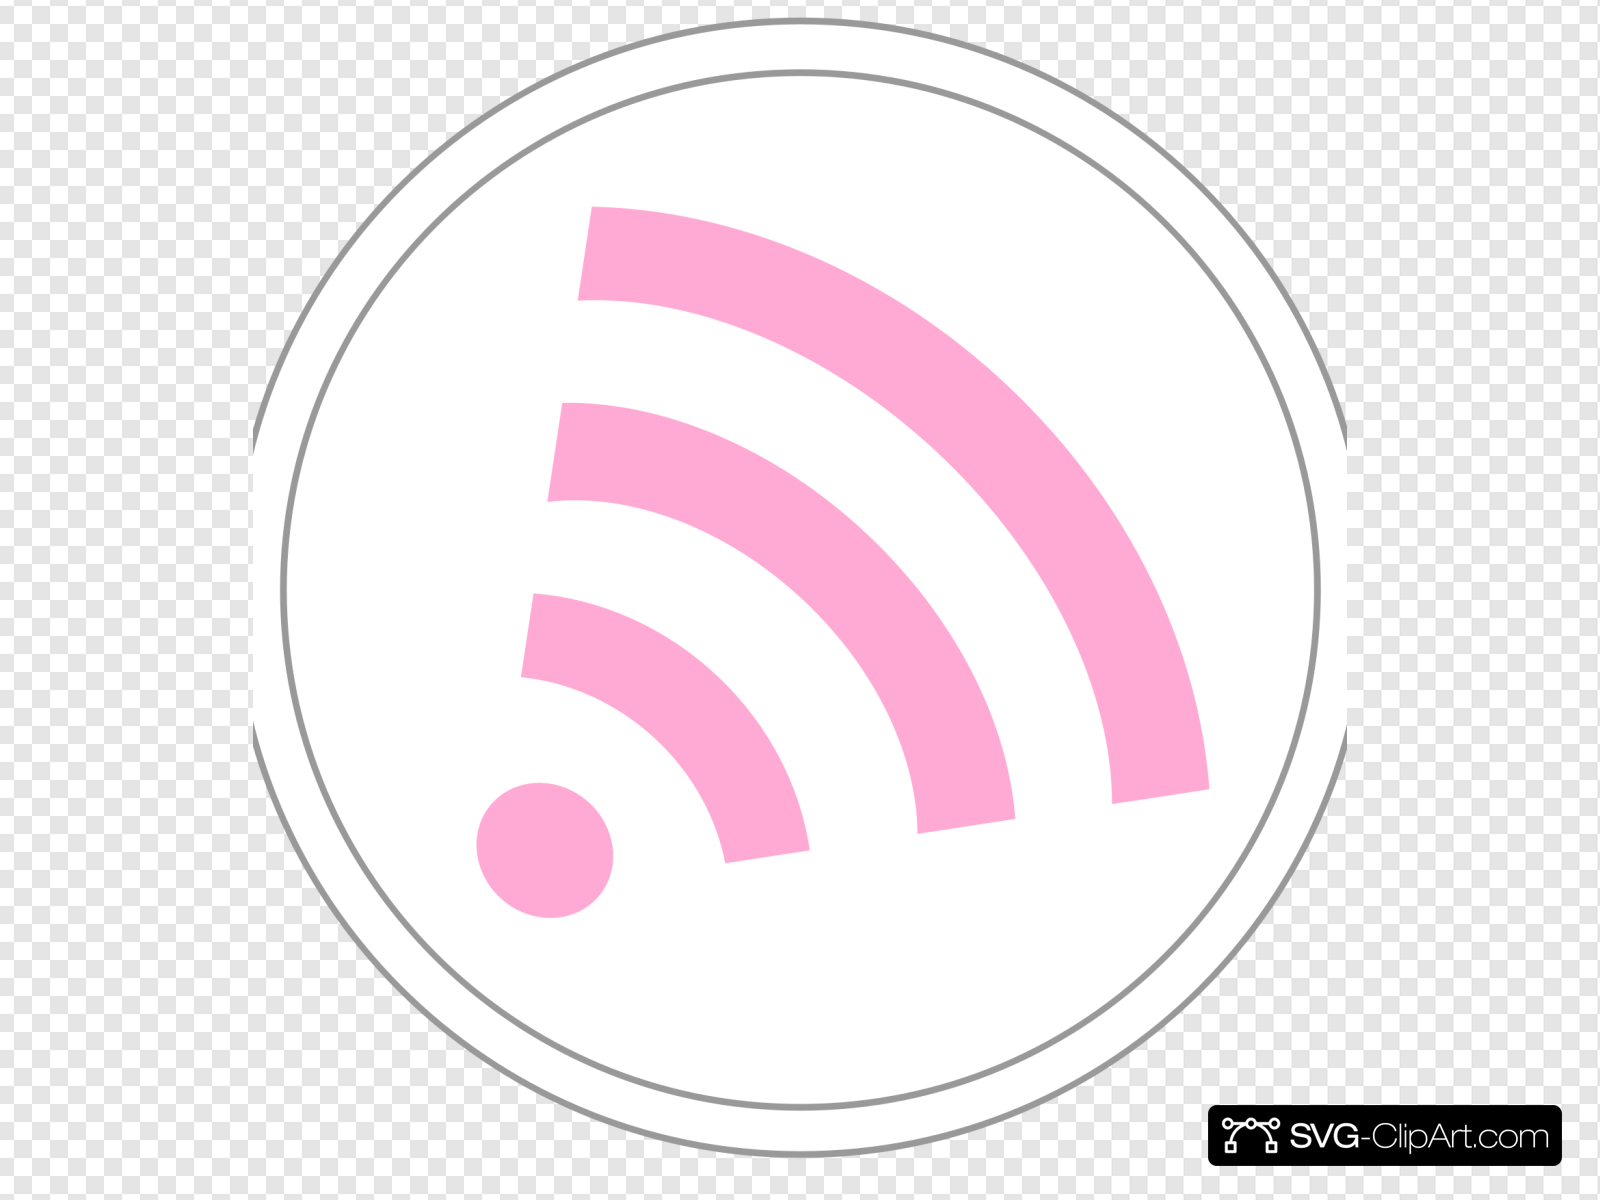 Pink Subscription Wifi Icon Clip art, Icon and SVG.